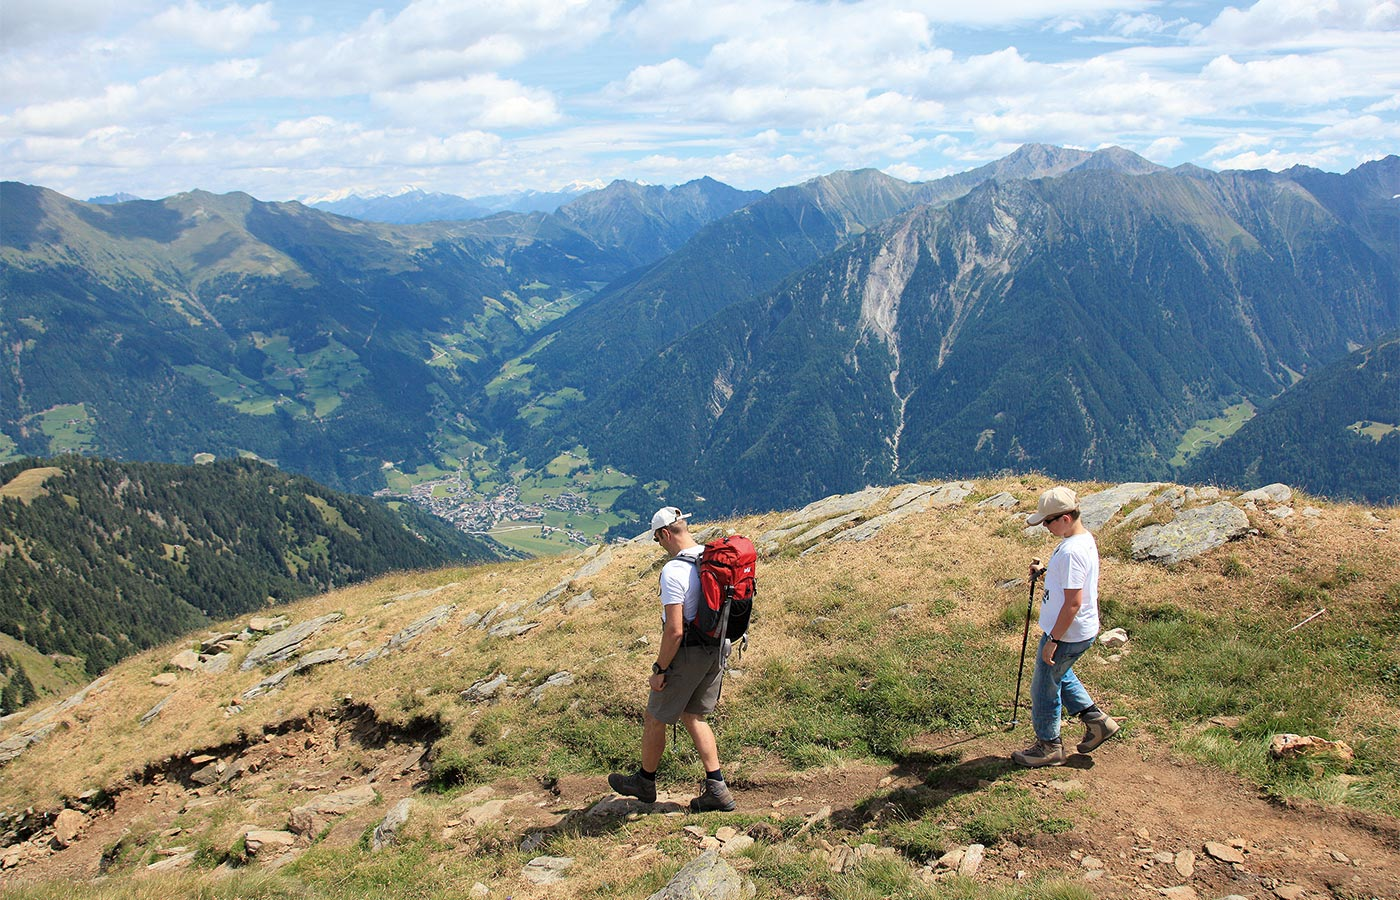 Hiking guests of the Hotel Alpenhof